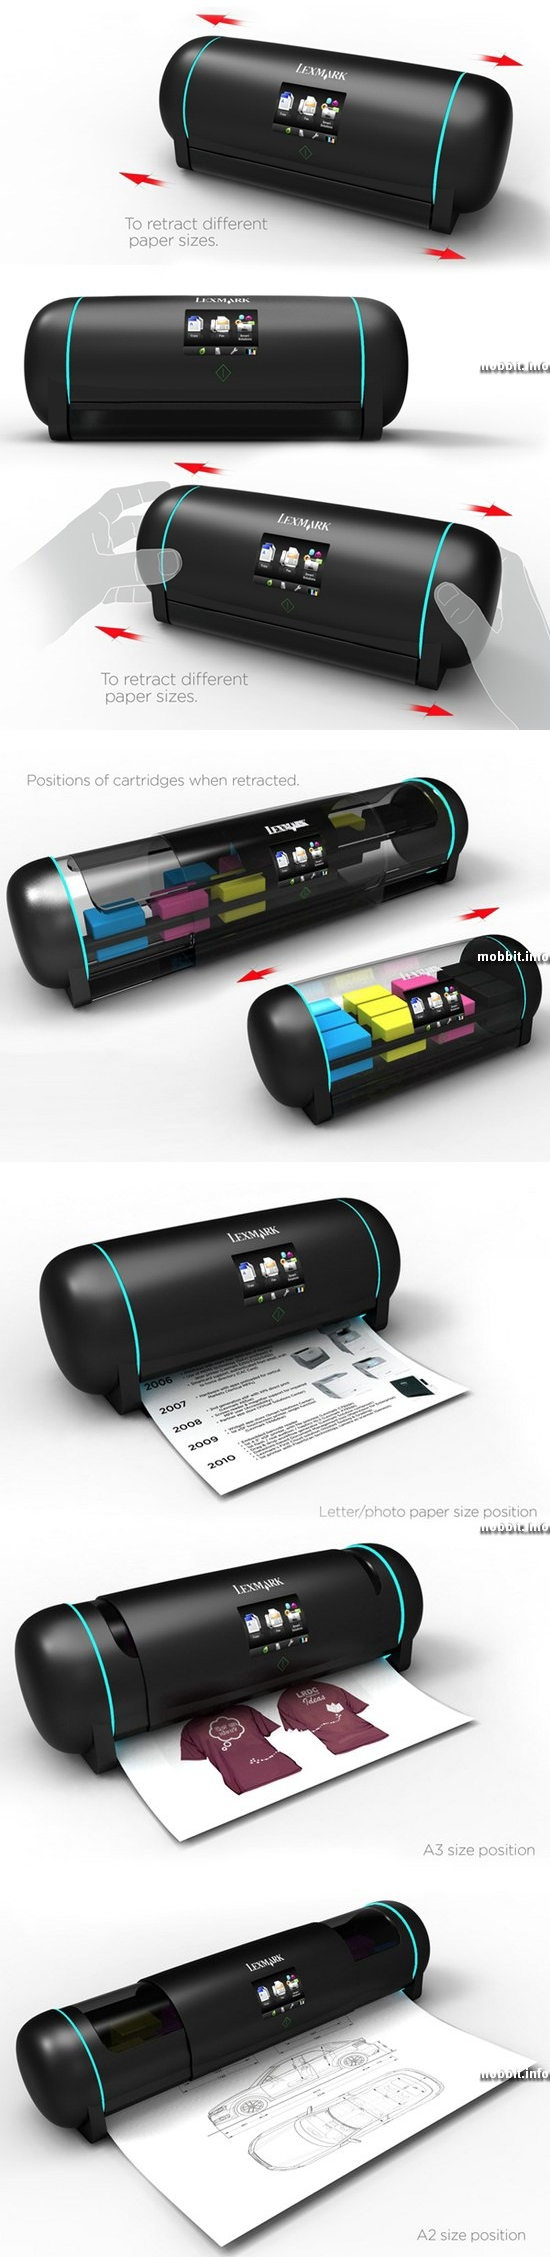 Retractable Printer